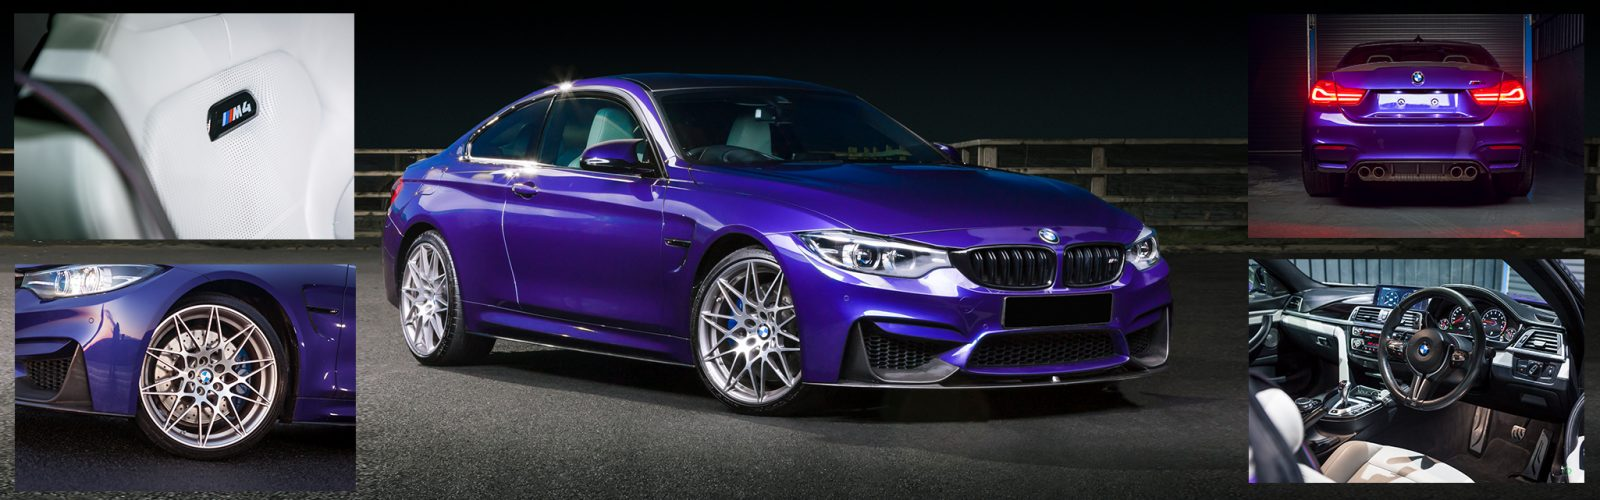 🔥WIN THIS BMW M4 COMPETITION PACKAGE